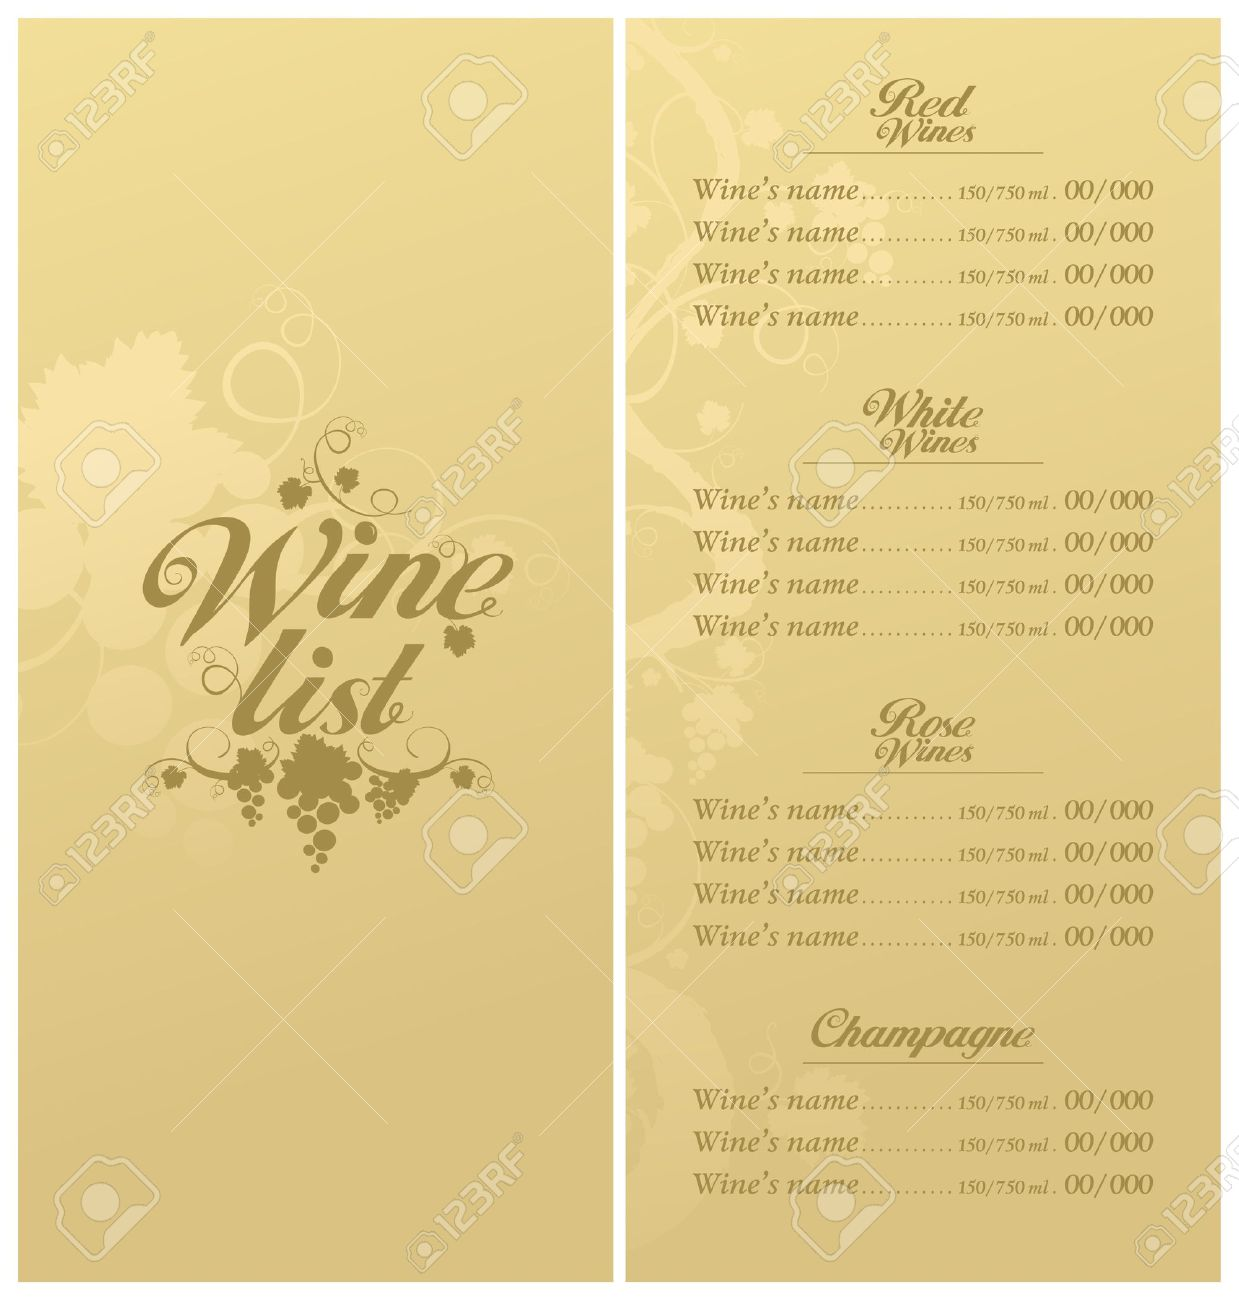 Wine List Menu Card Design Template. Stock Vector   11011781  Free Wine List Template